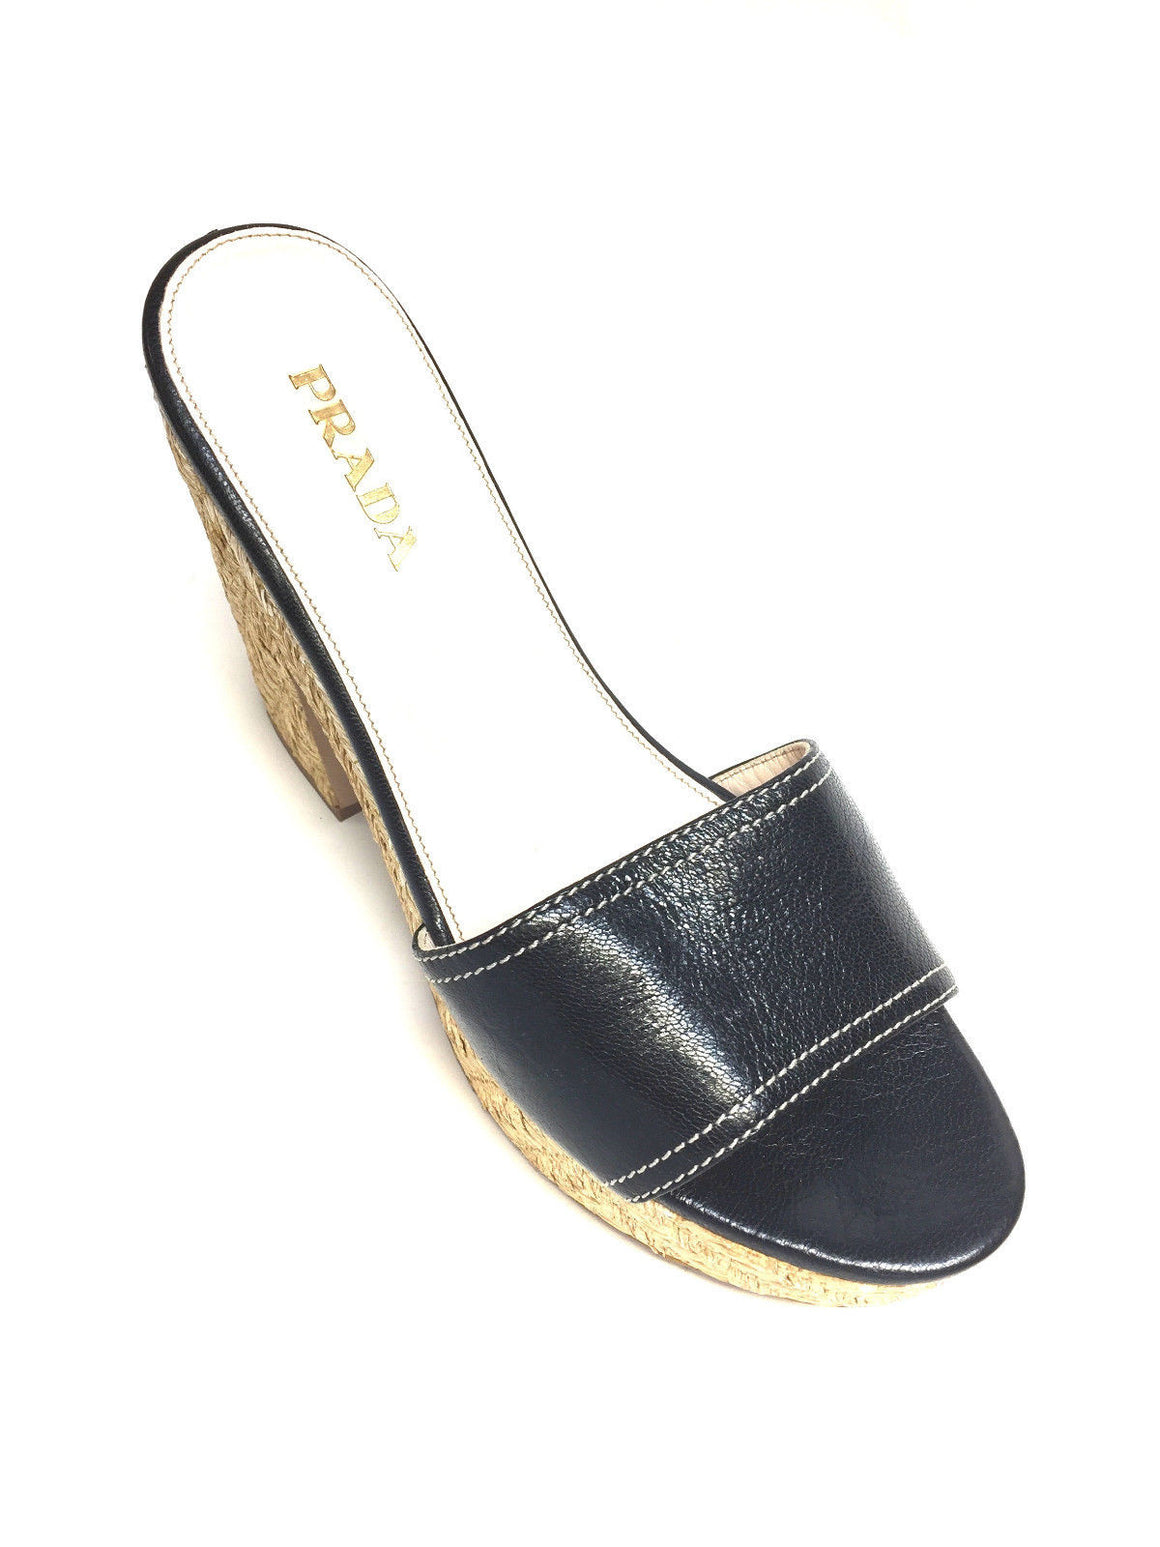 bisbiz.com PRADA  Black Leather Woven Raffia Platform & Heel  Open-Toe Slip On Mules  Size: 39.5 / 9.5 - Bis Luxury Resale